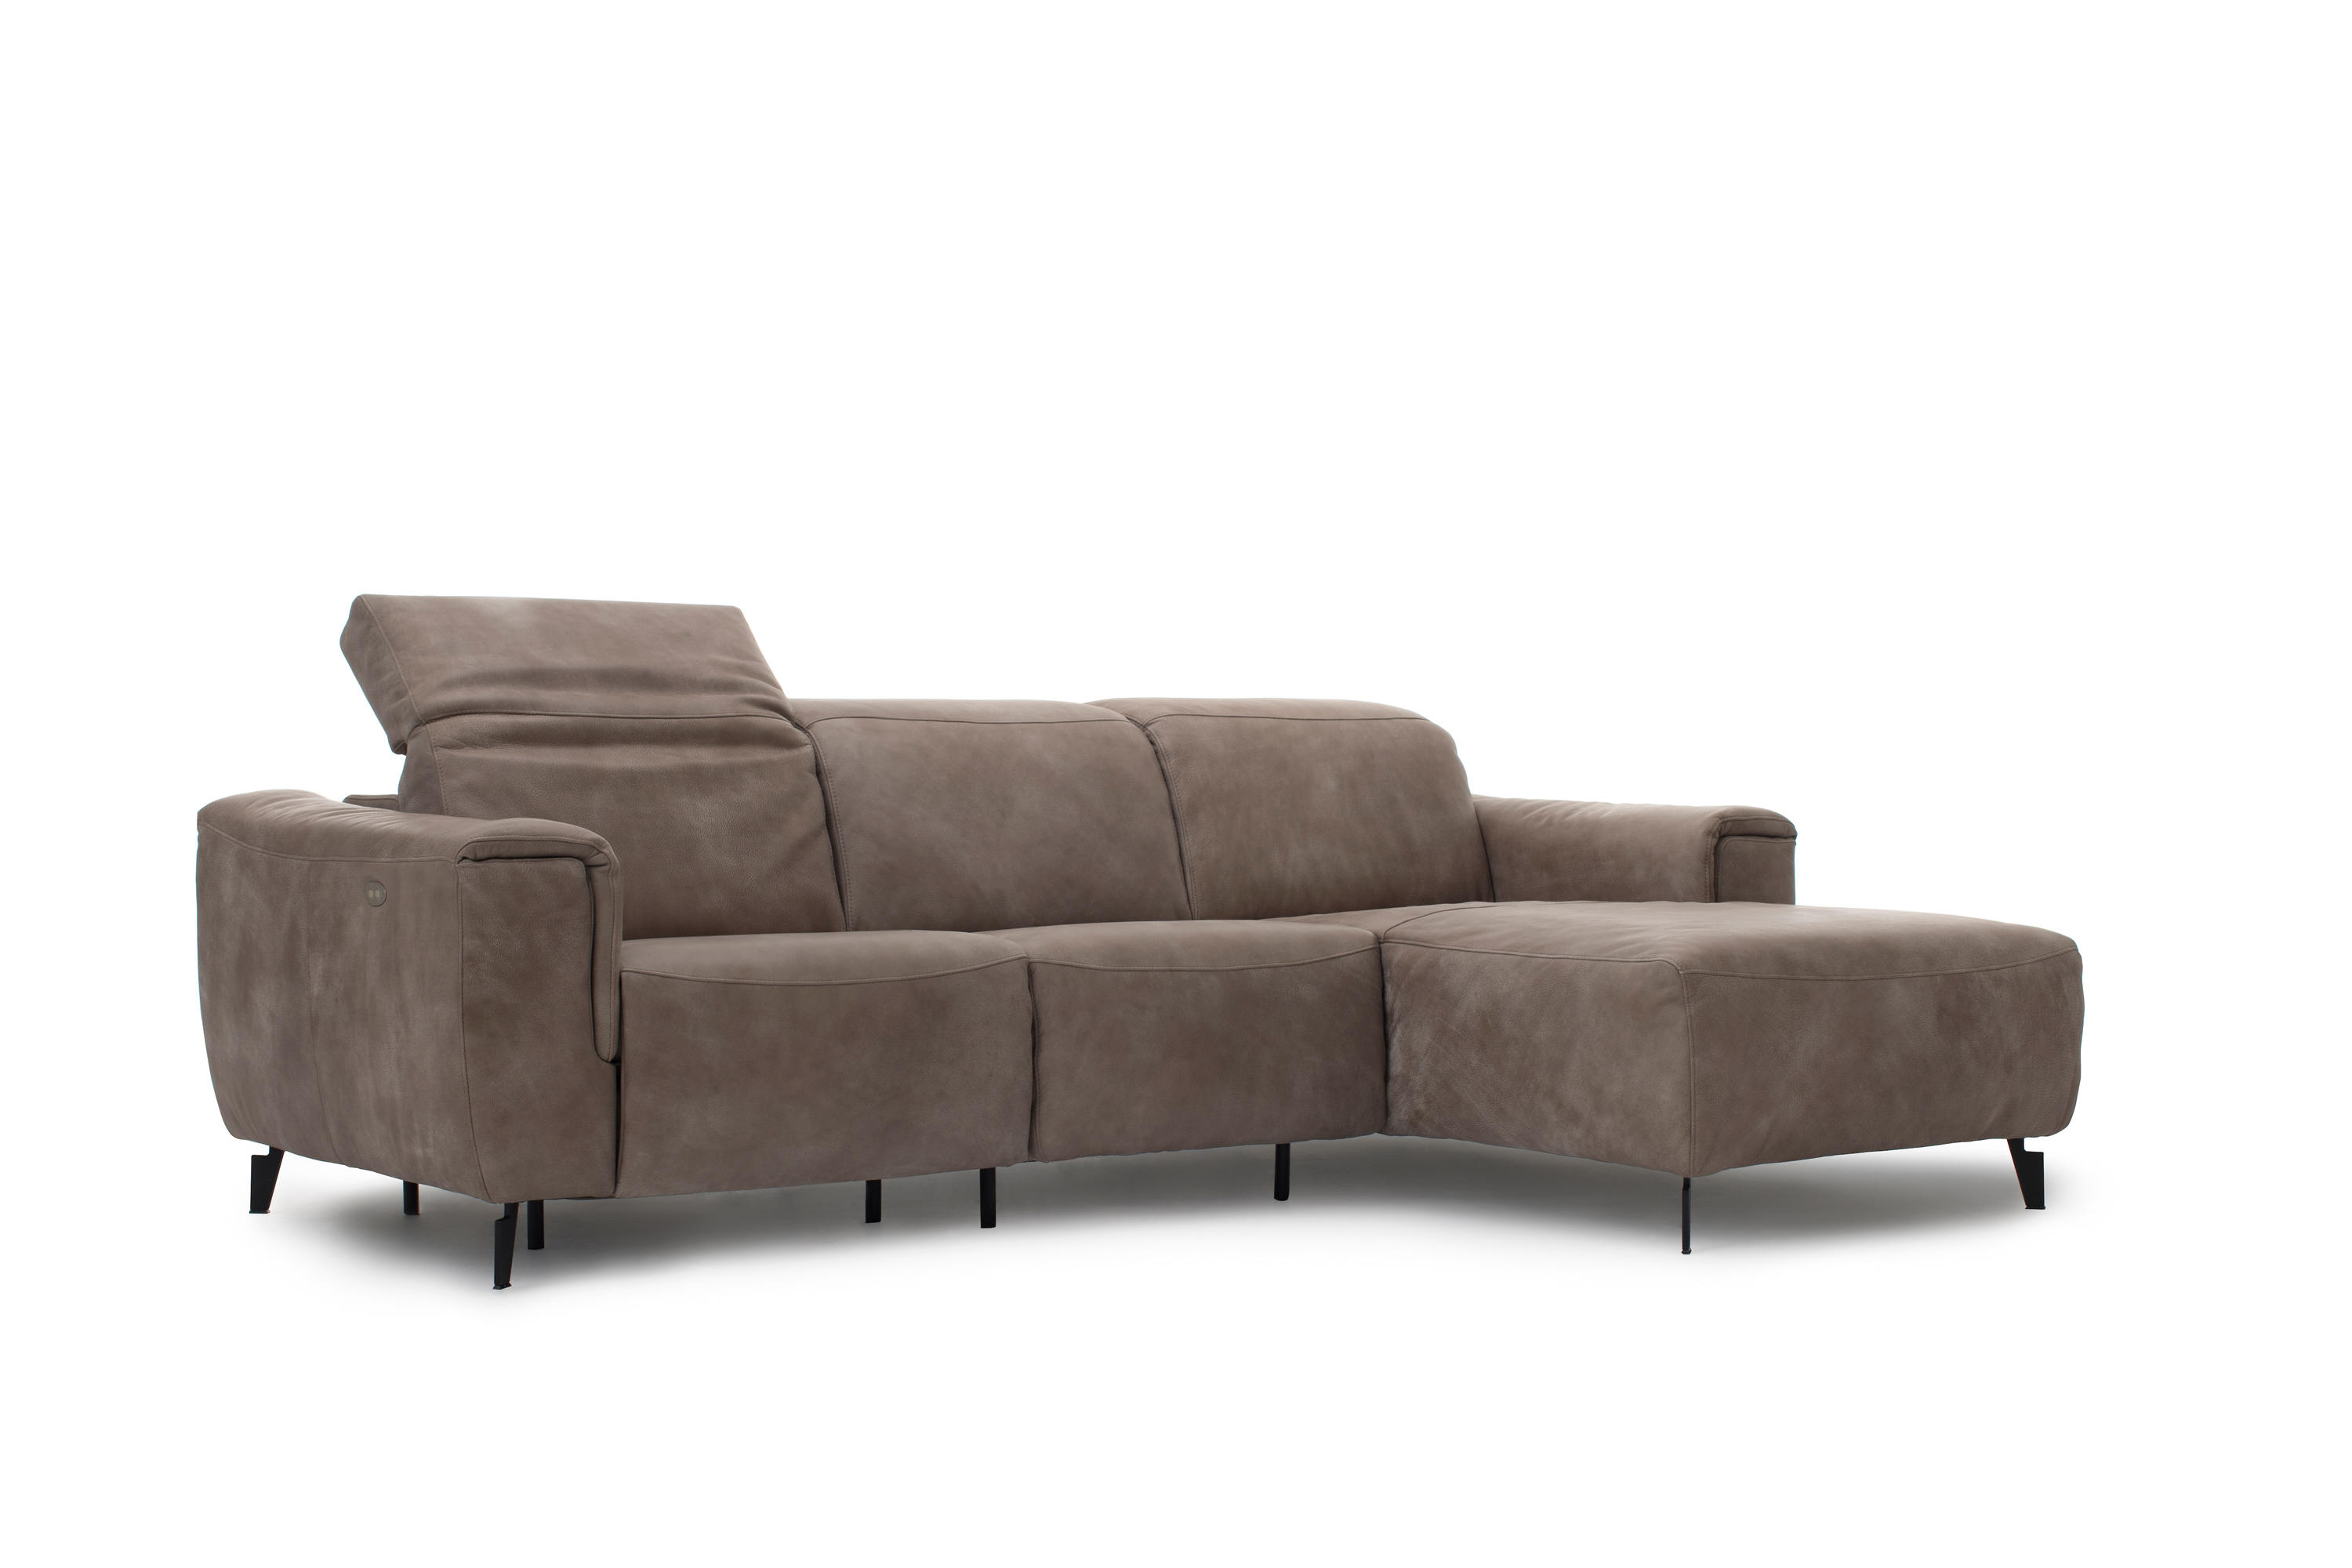 joy relax sofa sofas from extraform architonic. Black Bedroom Furniture Sets. Home Design Ideas